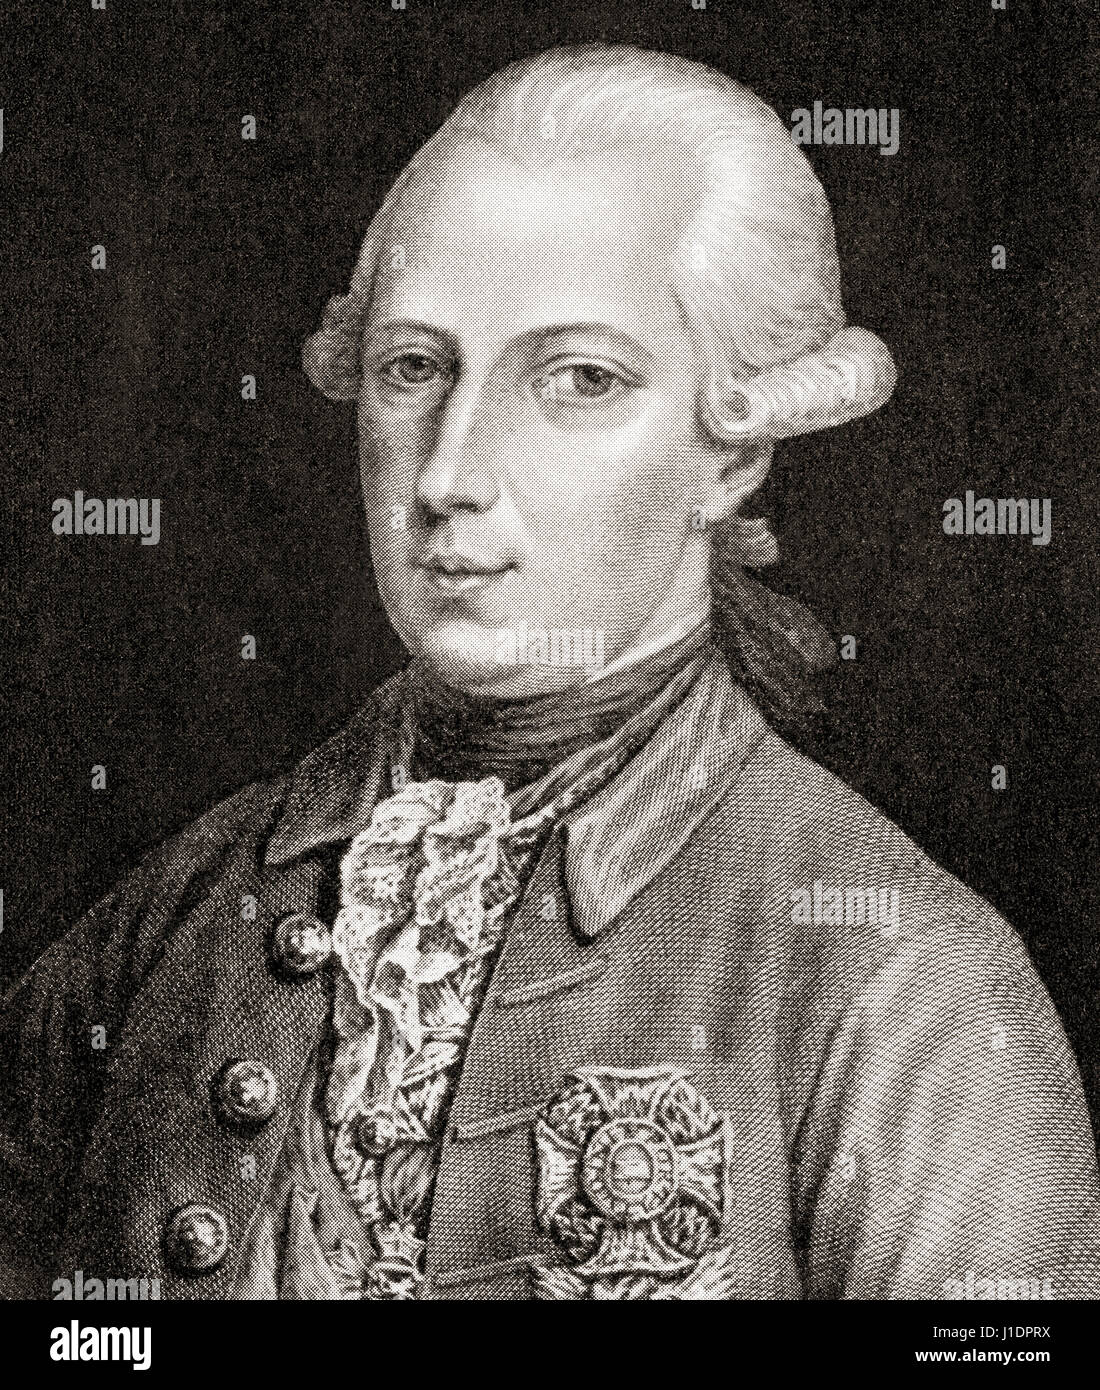 Joseph II, 1741 – 1790.  Holy Roman Emperor and ruler of the Habsburg lands.  From Hutchinson's History of the - Stock Image